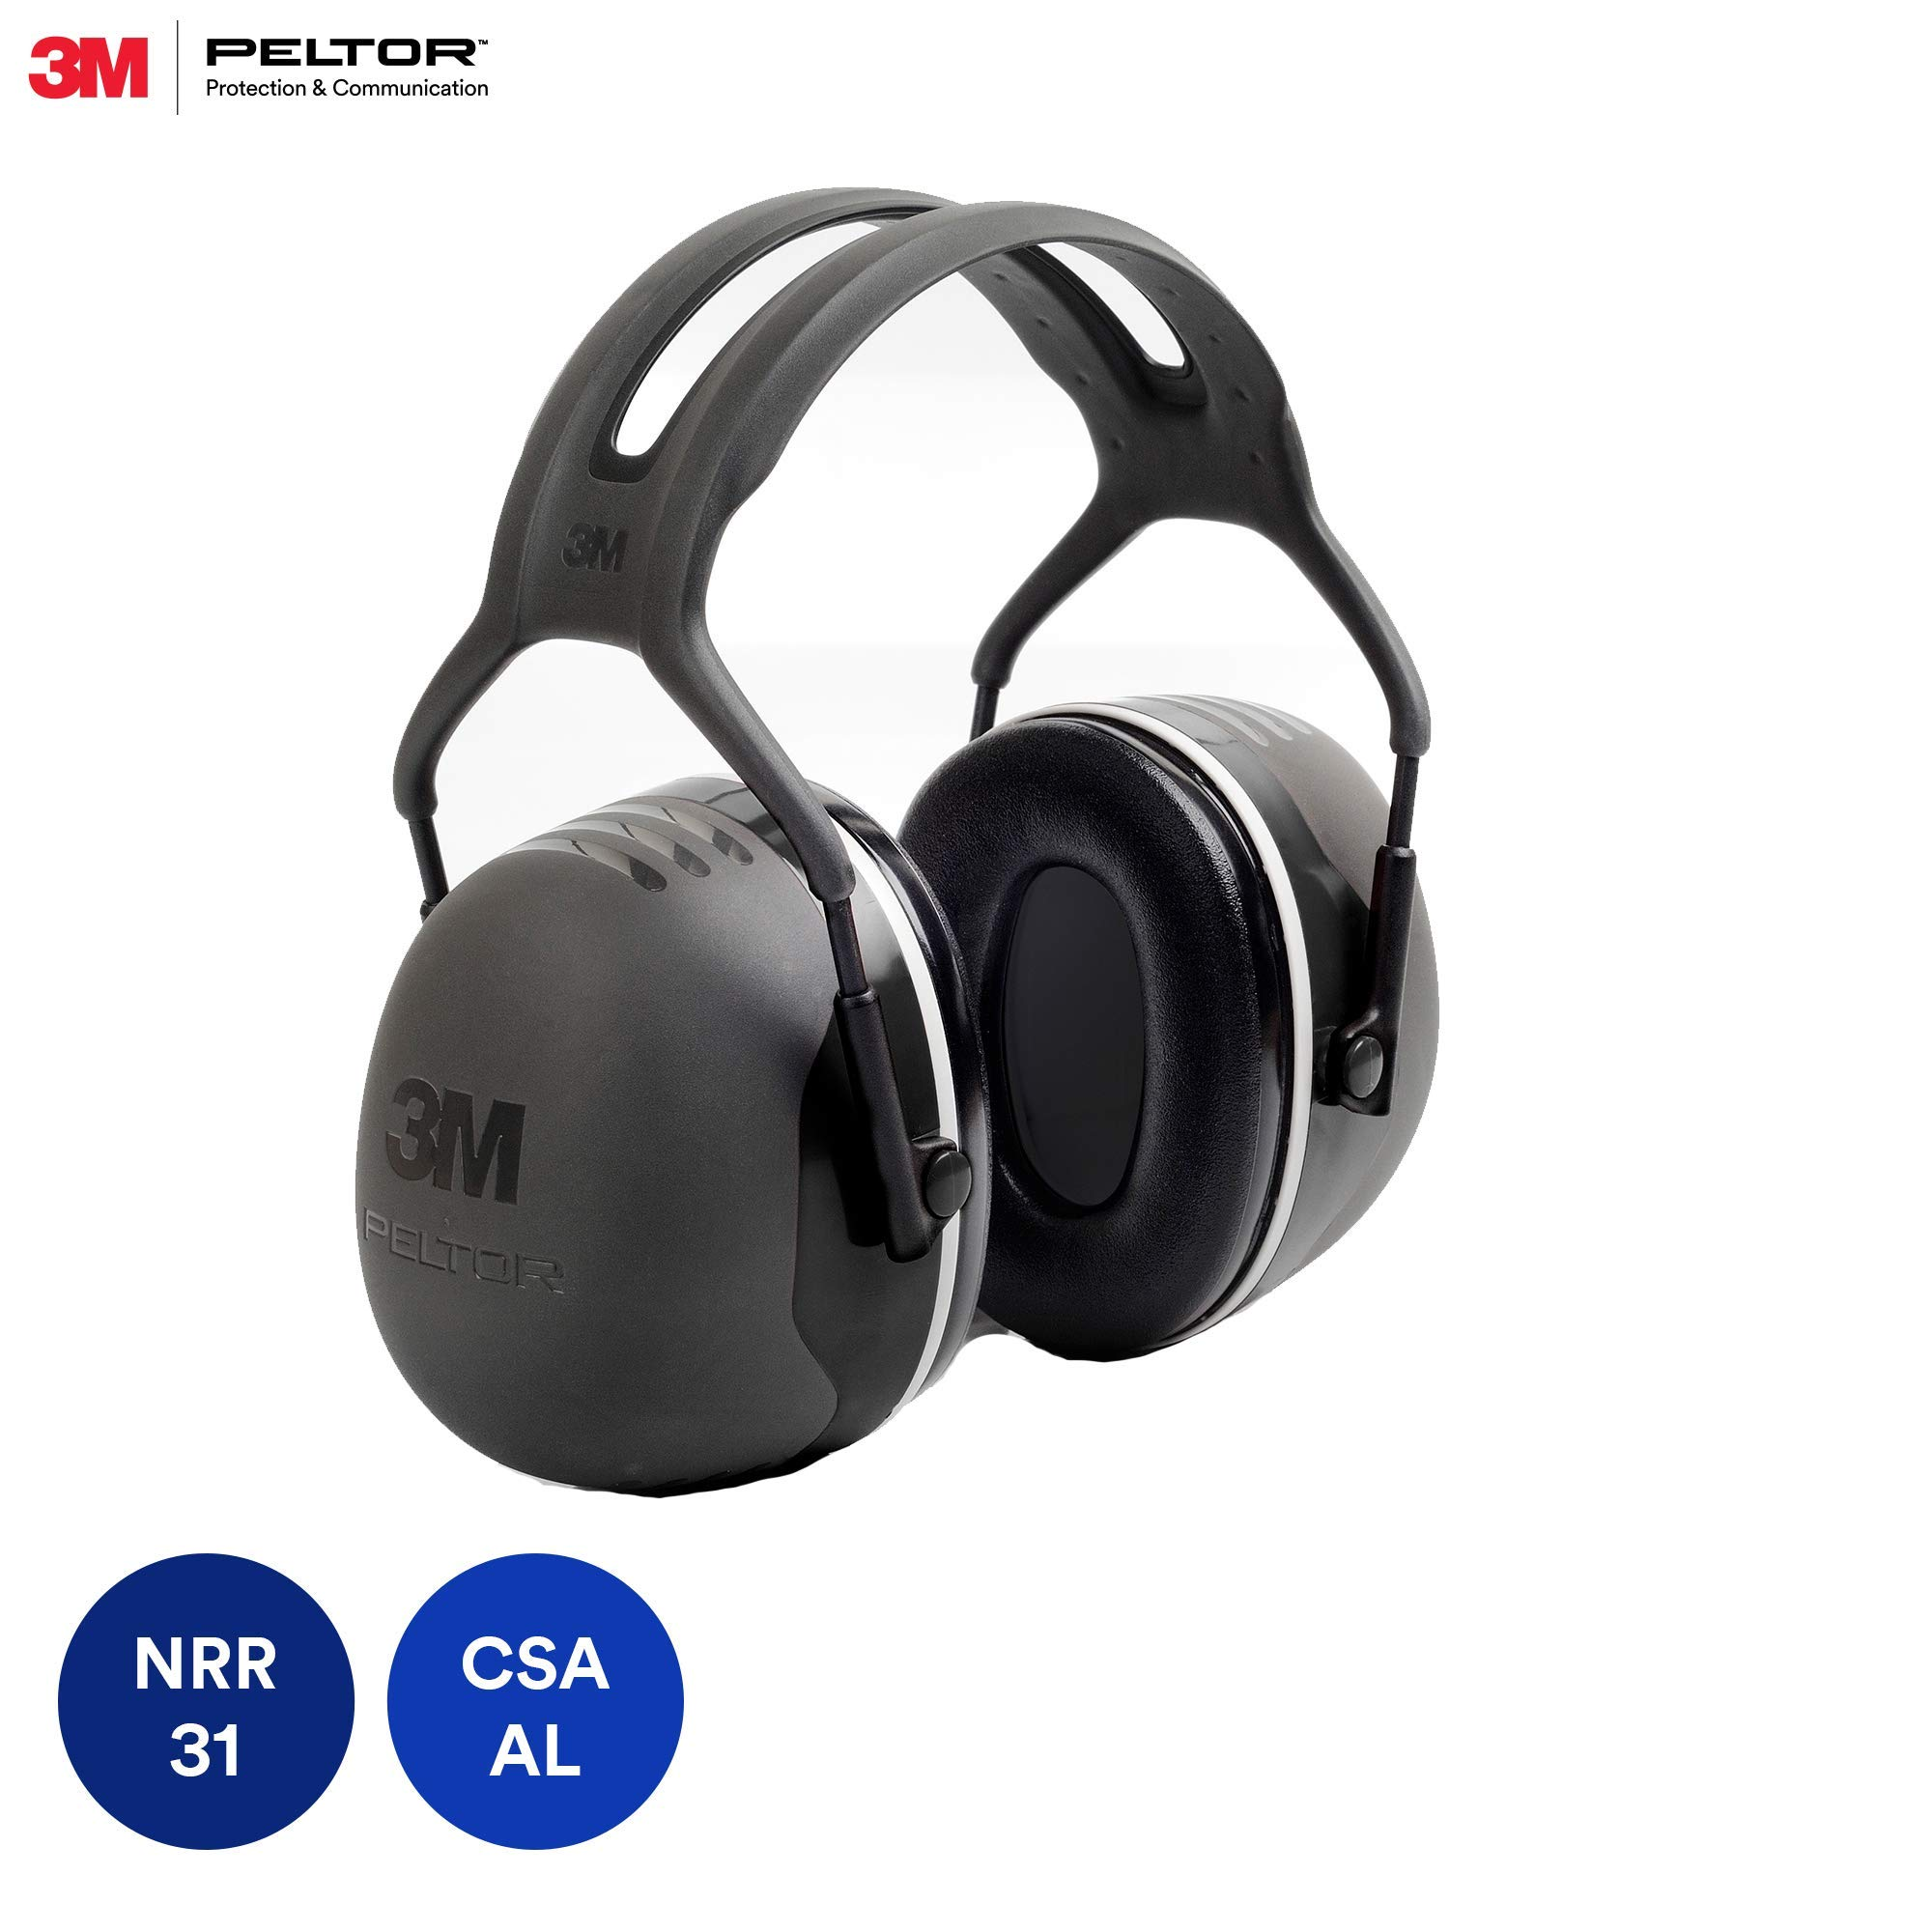 3M PELTOR X5A Over-the-Head Ear Muffs, Noise Protection, NRR 31 dB, Construction, Manufacturing, Maintenance, Automotive, Woodworking, Heavy Engineering, Mining by 3M Personal Protective Equipment